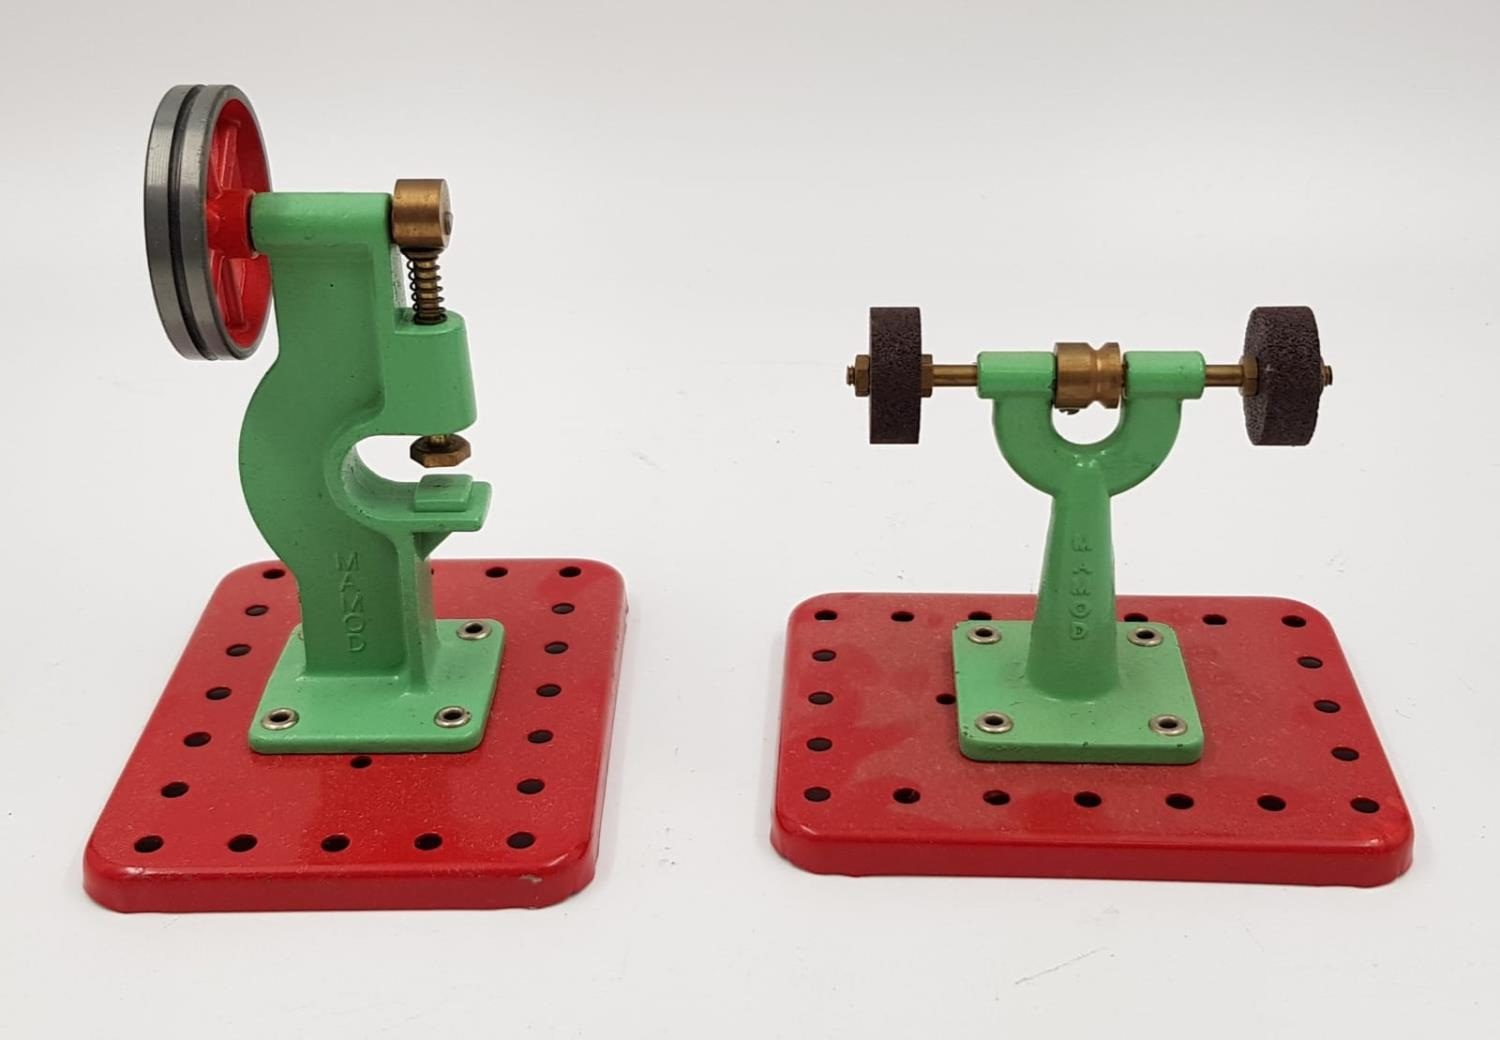 A pair of Momod accessories for their steam engines and Meccano sets. The model power press and